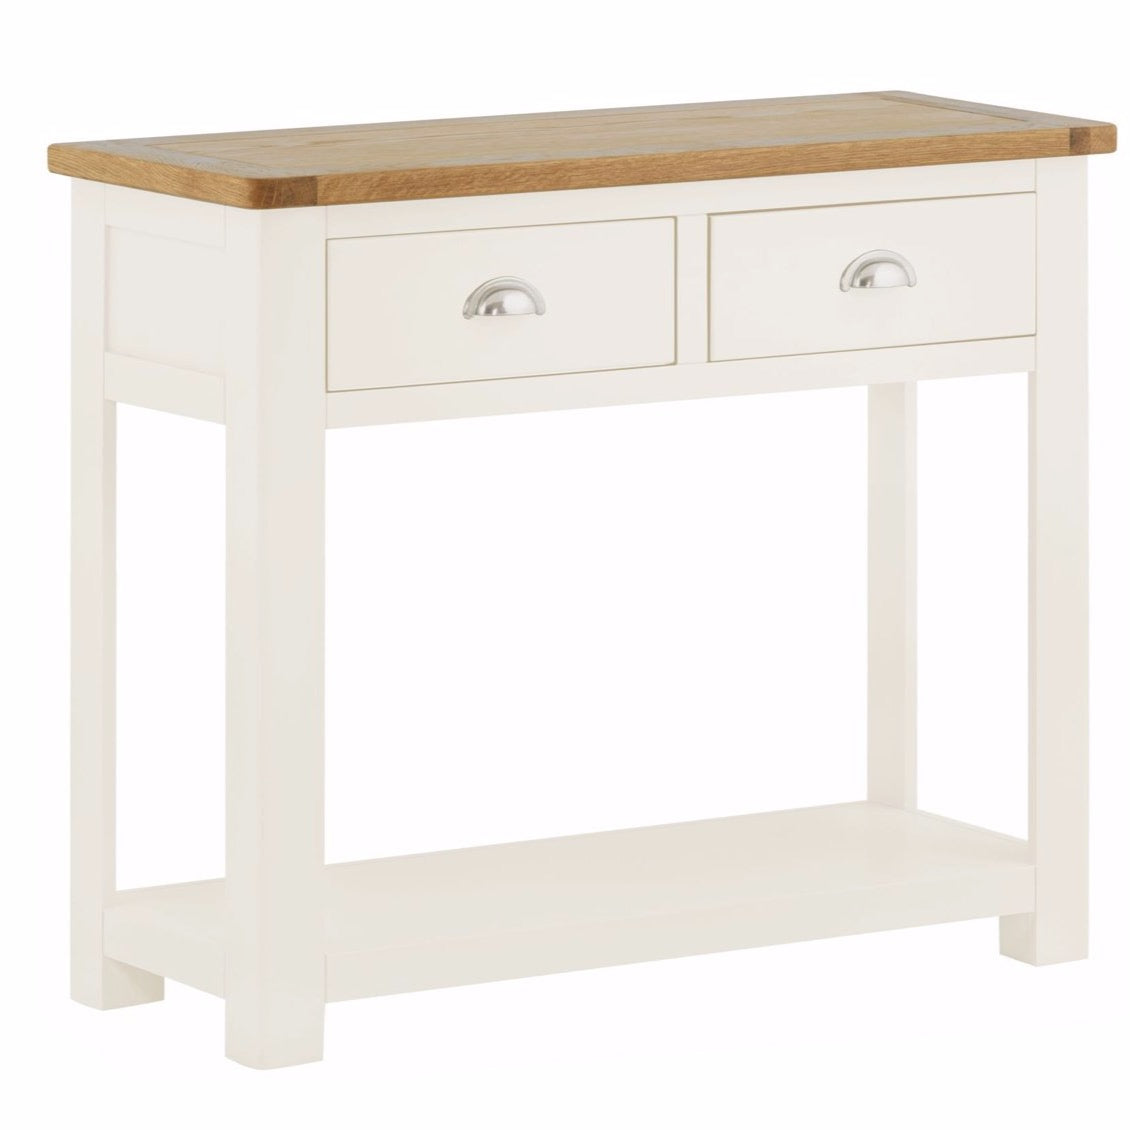 Todenham Oak & White Painted Console Table - 2 Drawer